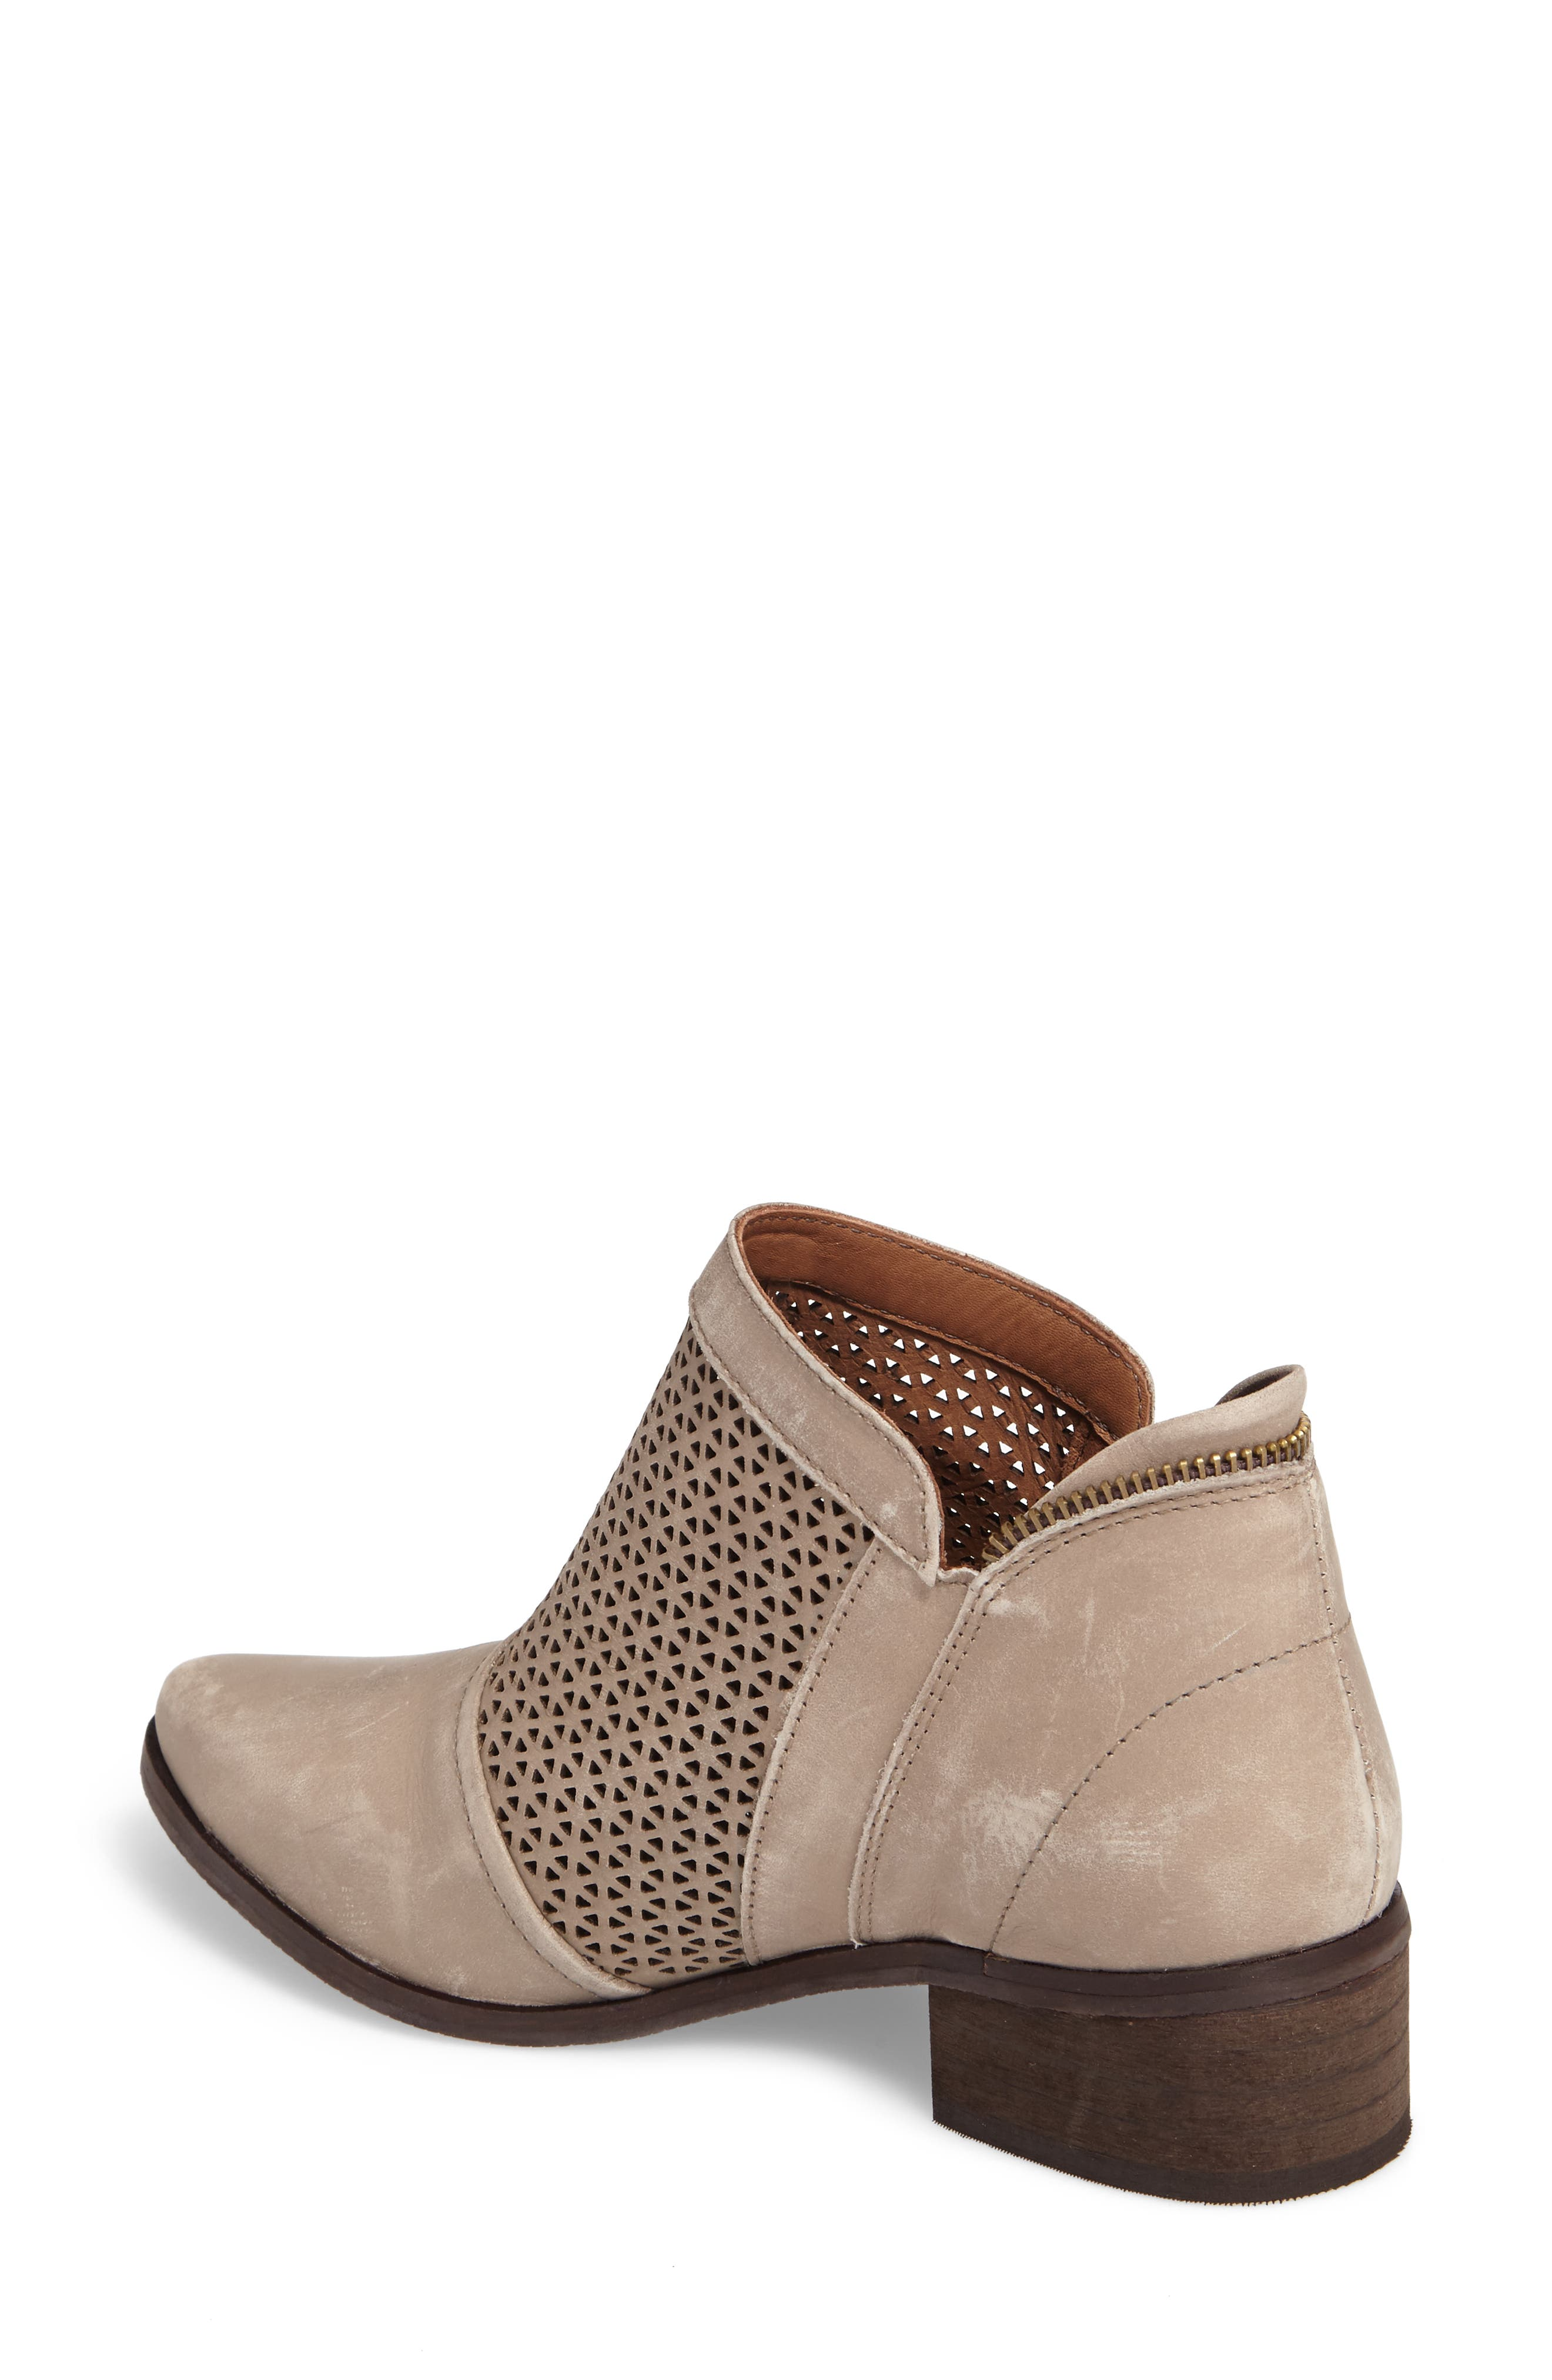 Zayna Bootie,                             Alternate thumbnail 2, color,                             Taupe Suede